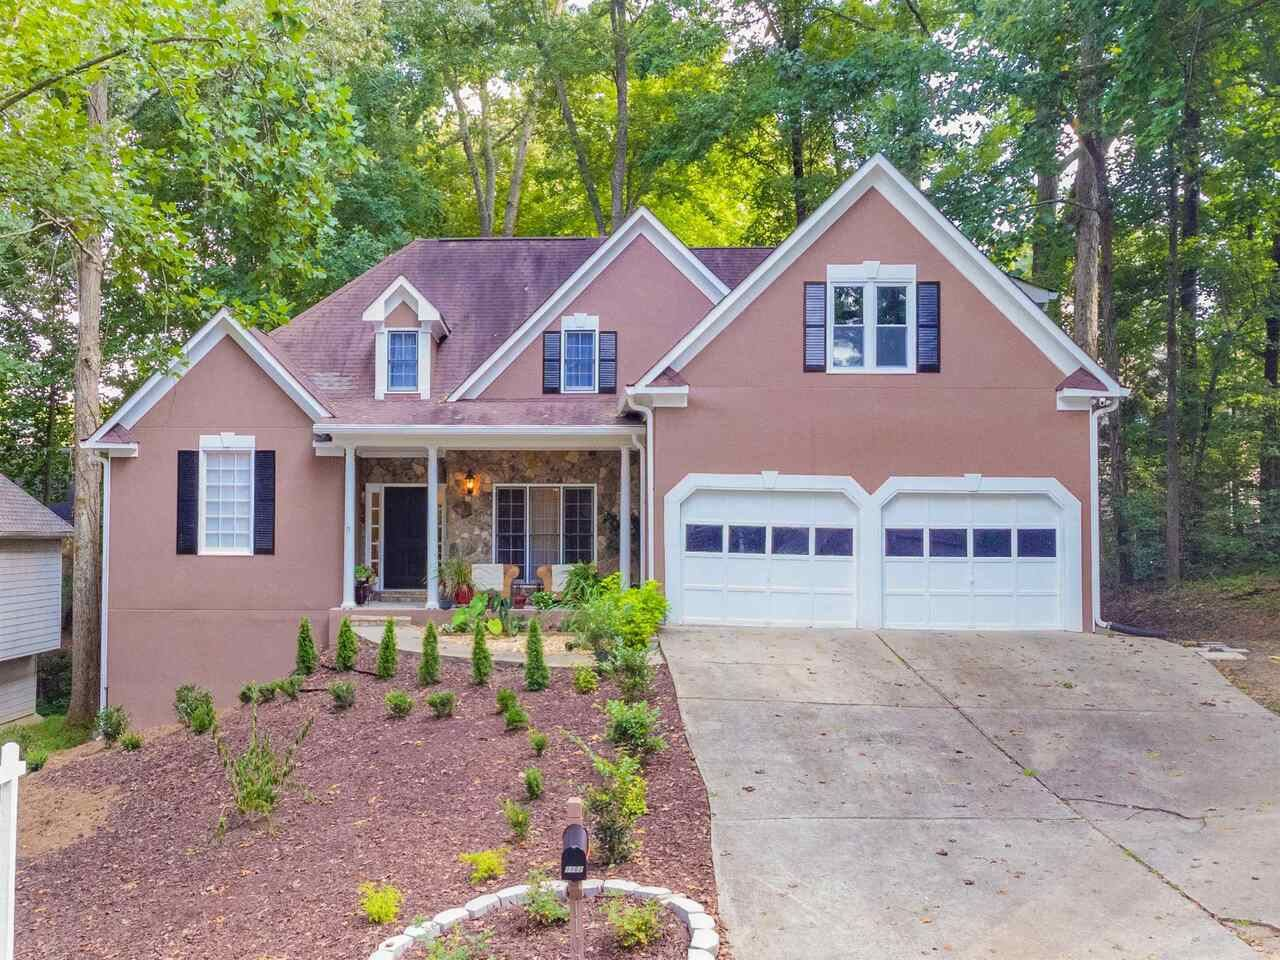 1102 Cool Springs Drive NW, Kennesaw, GA 30144 - #: 9031506